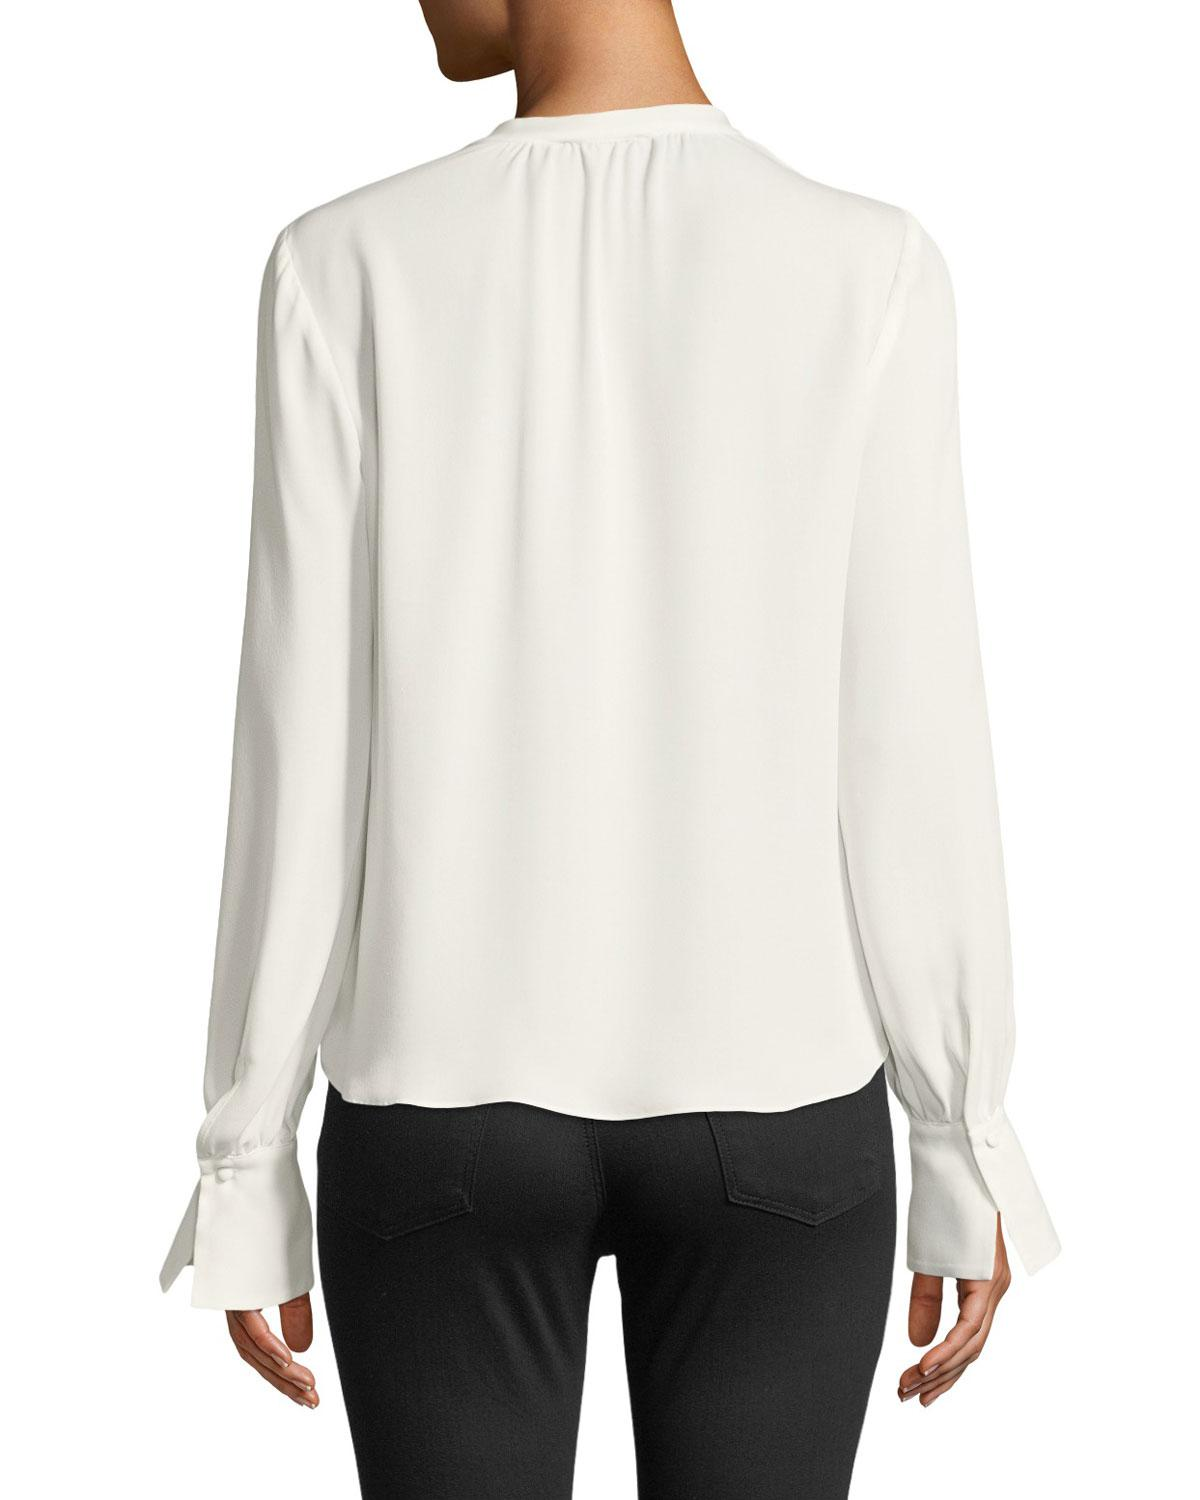 062c0caebbf47 Lyst - Joie Tariana Button-front Long-sleeve Silk Blouse in White